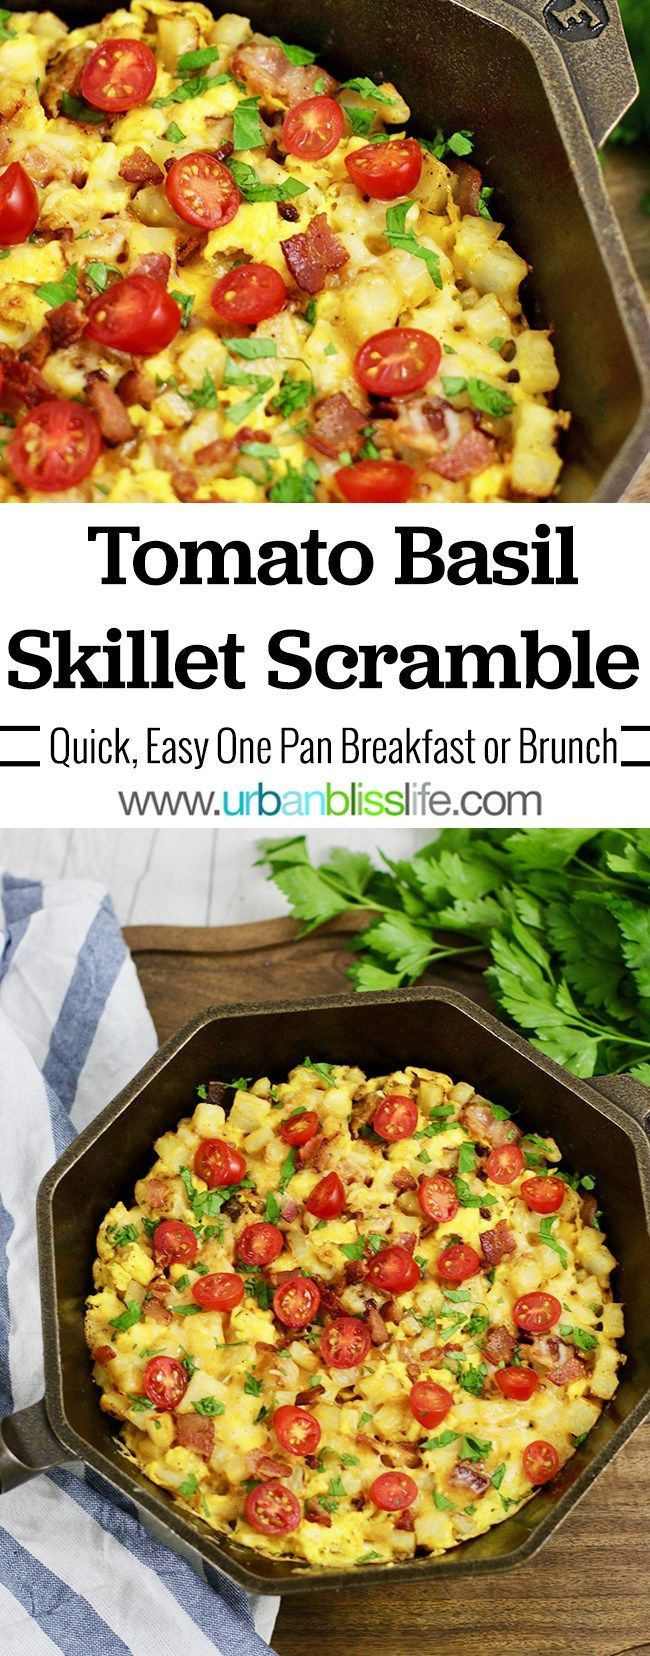 Tomato Basil Skillet Scramble is a hearty, protein-packed, veggie-packed one-skillet breakfast reci